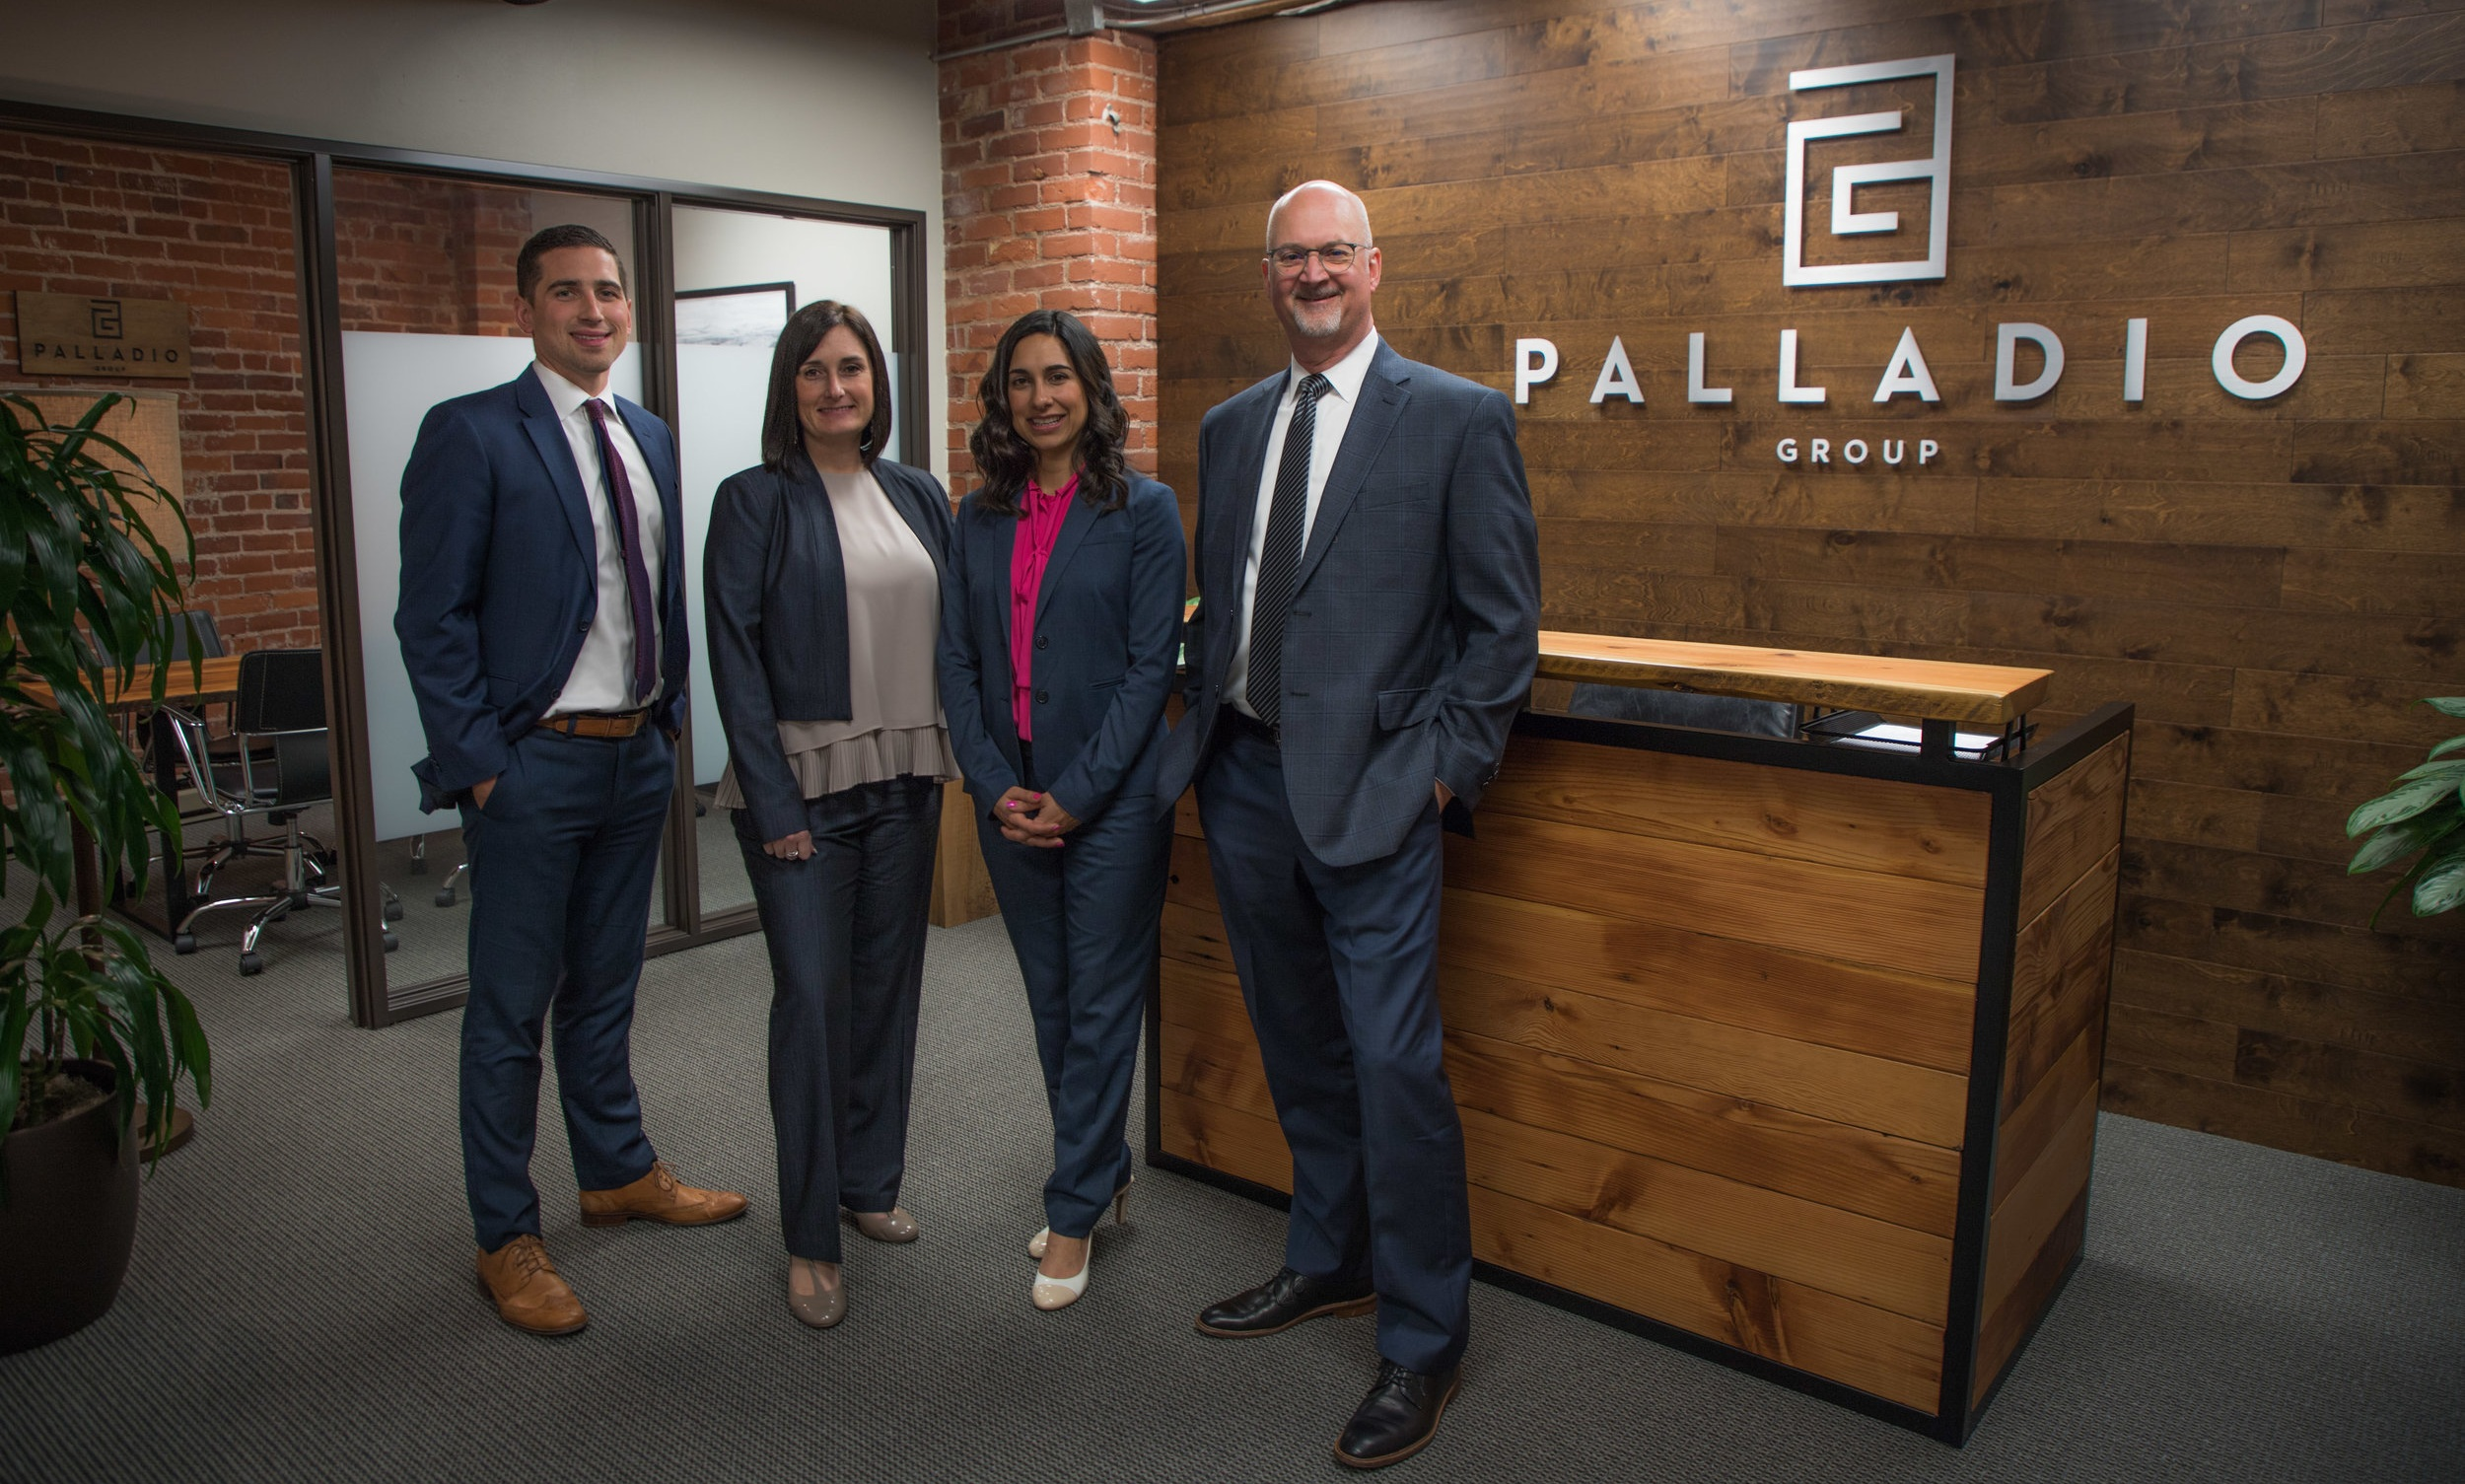 Palladio_Group_Team_Photo.jpg